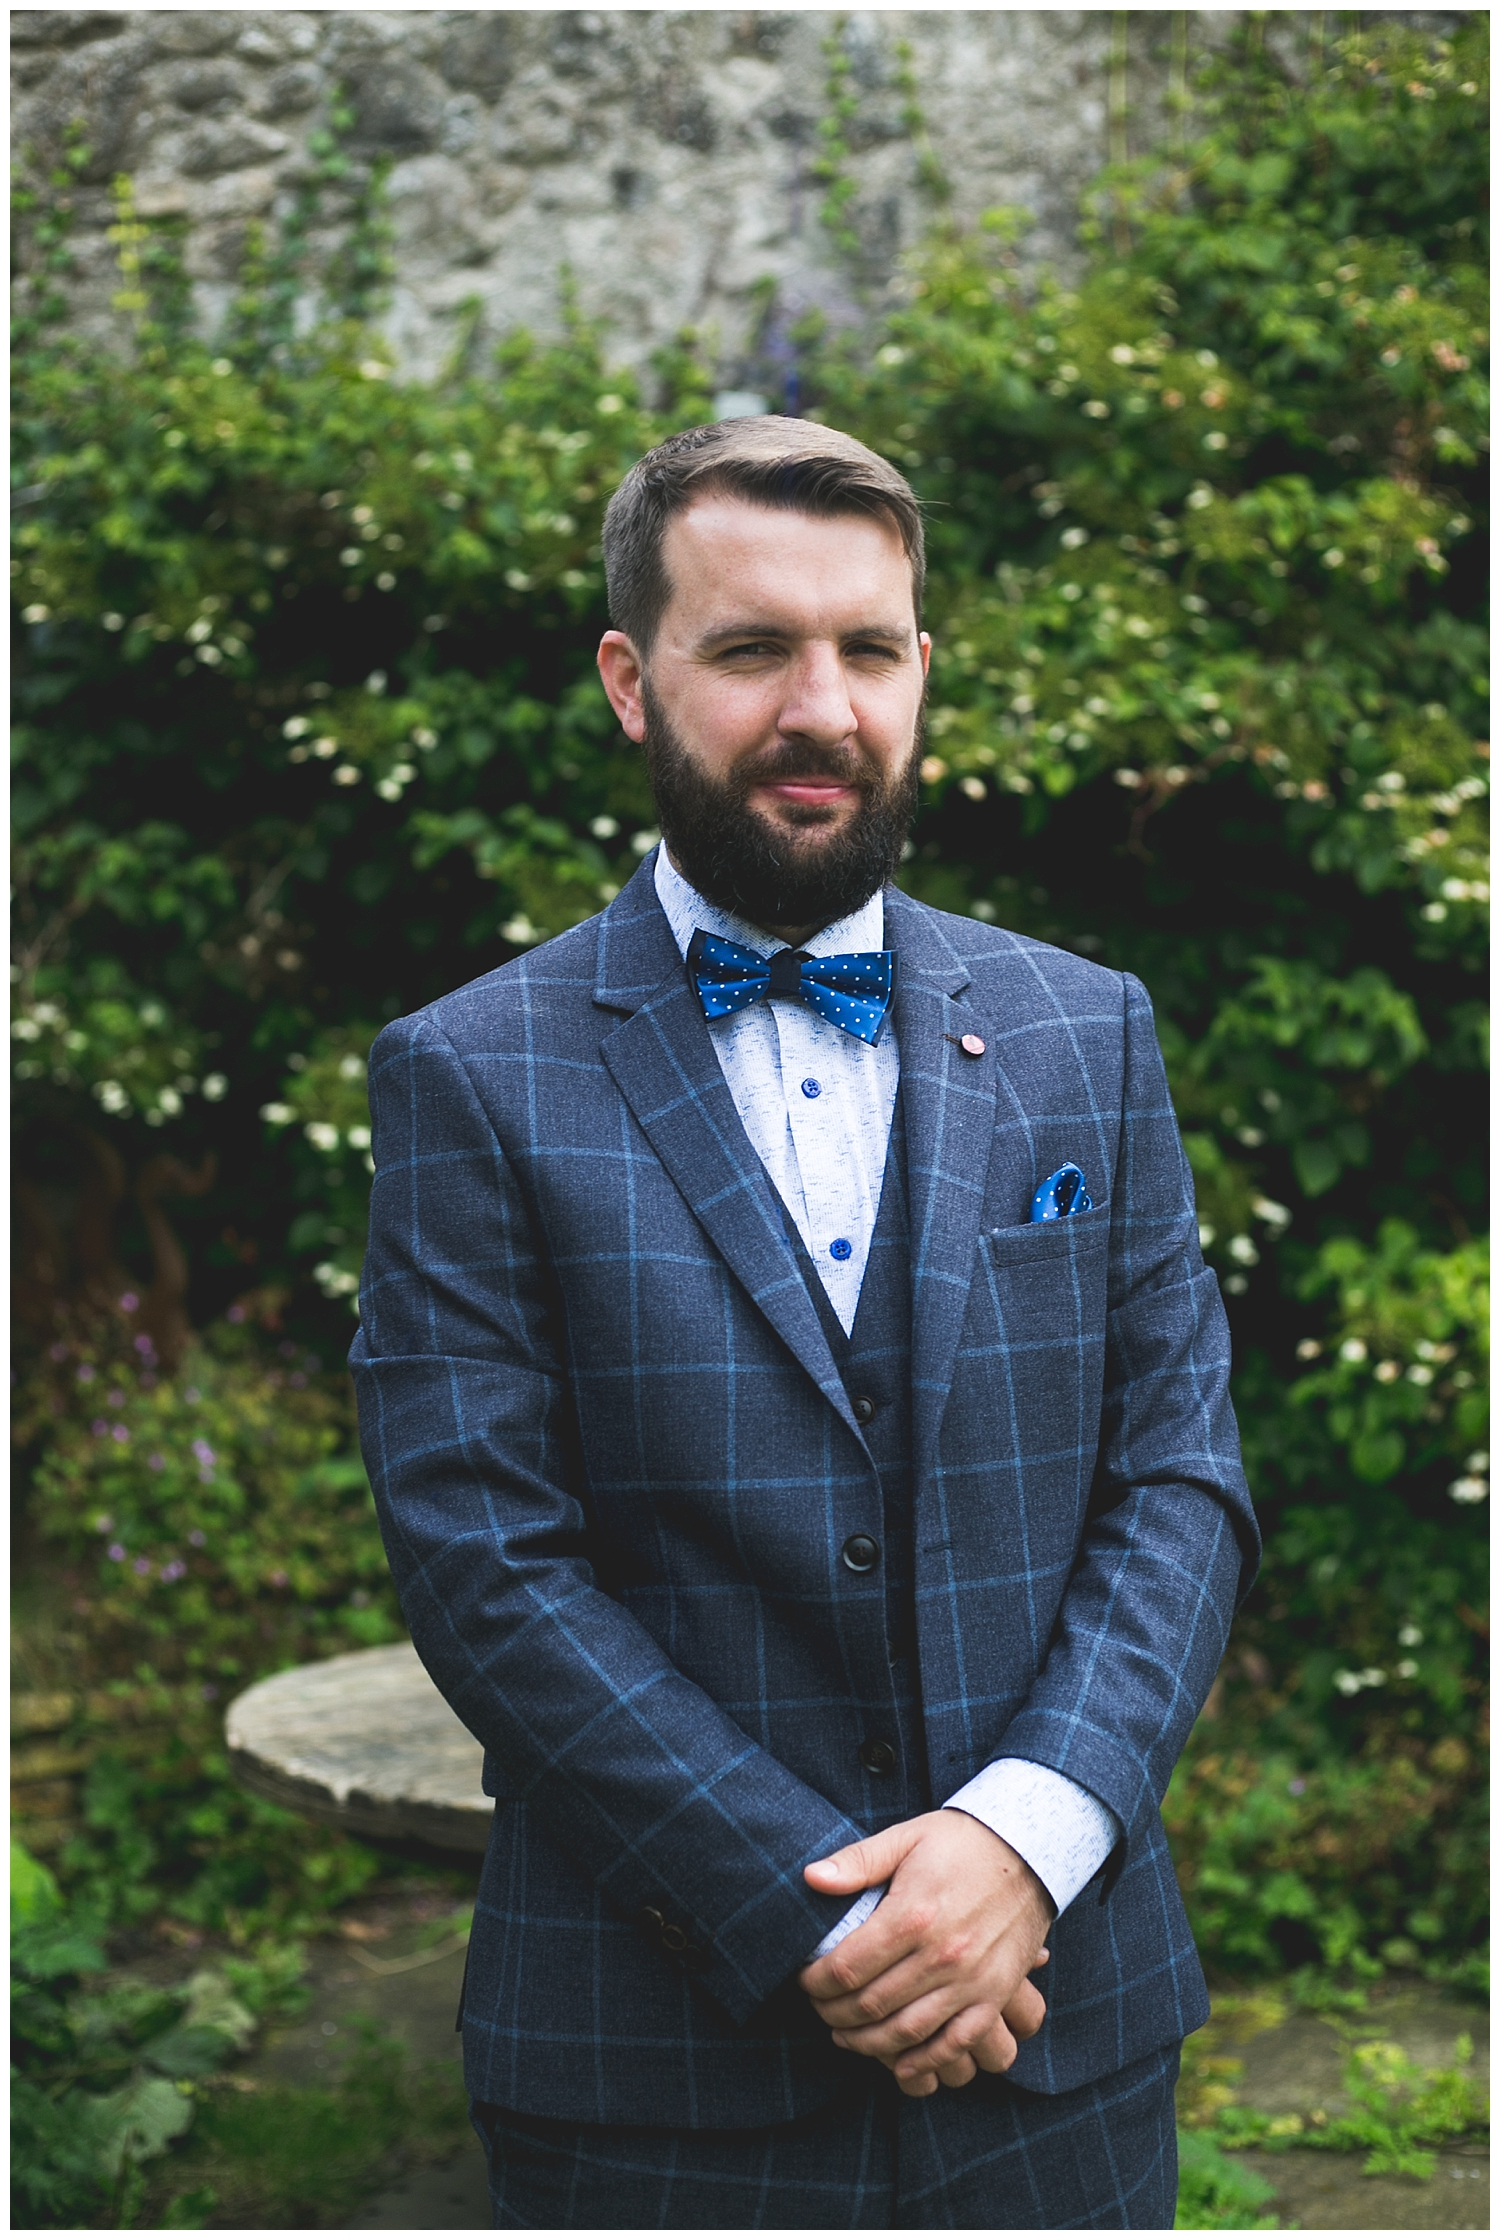 Groom in a dapper three piece blue and navy suit